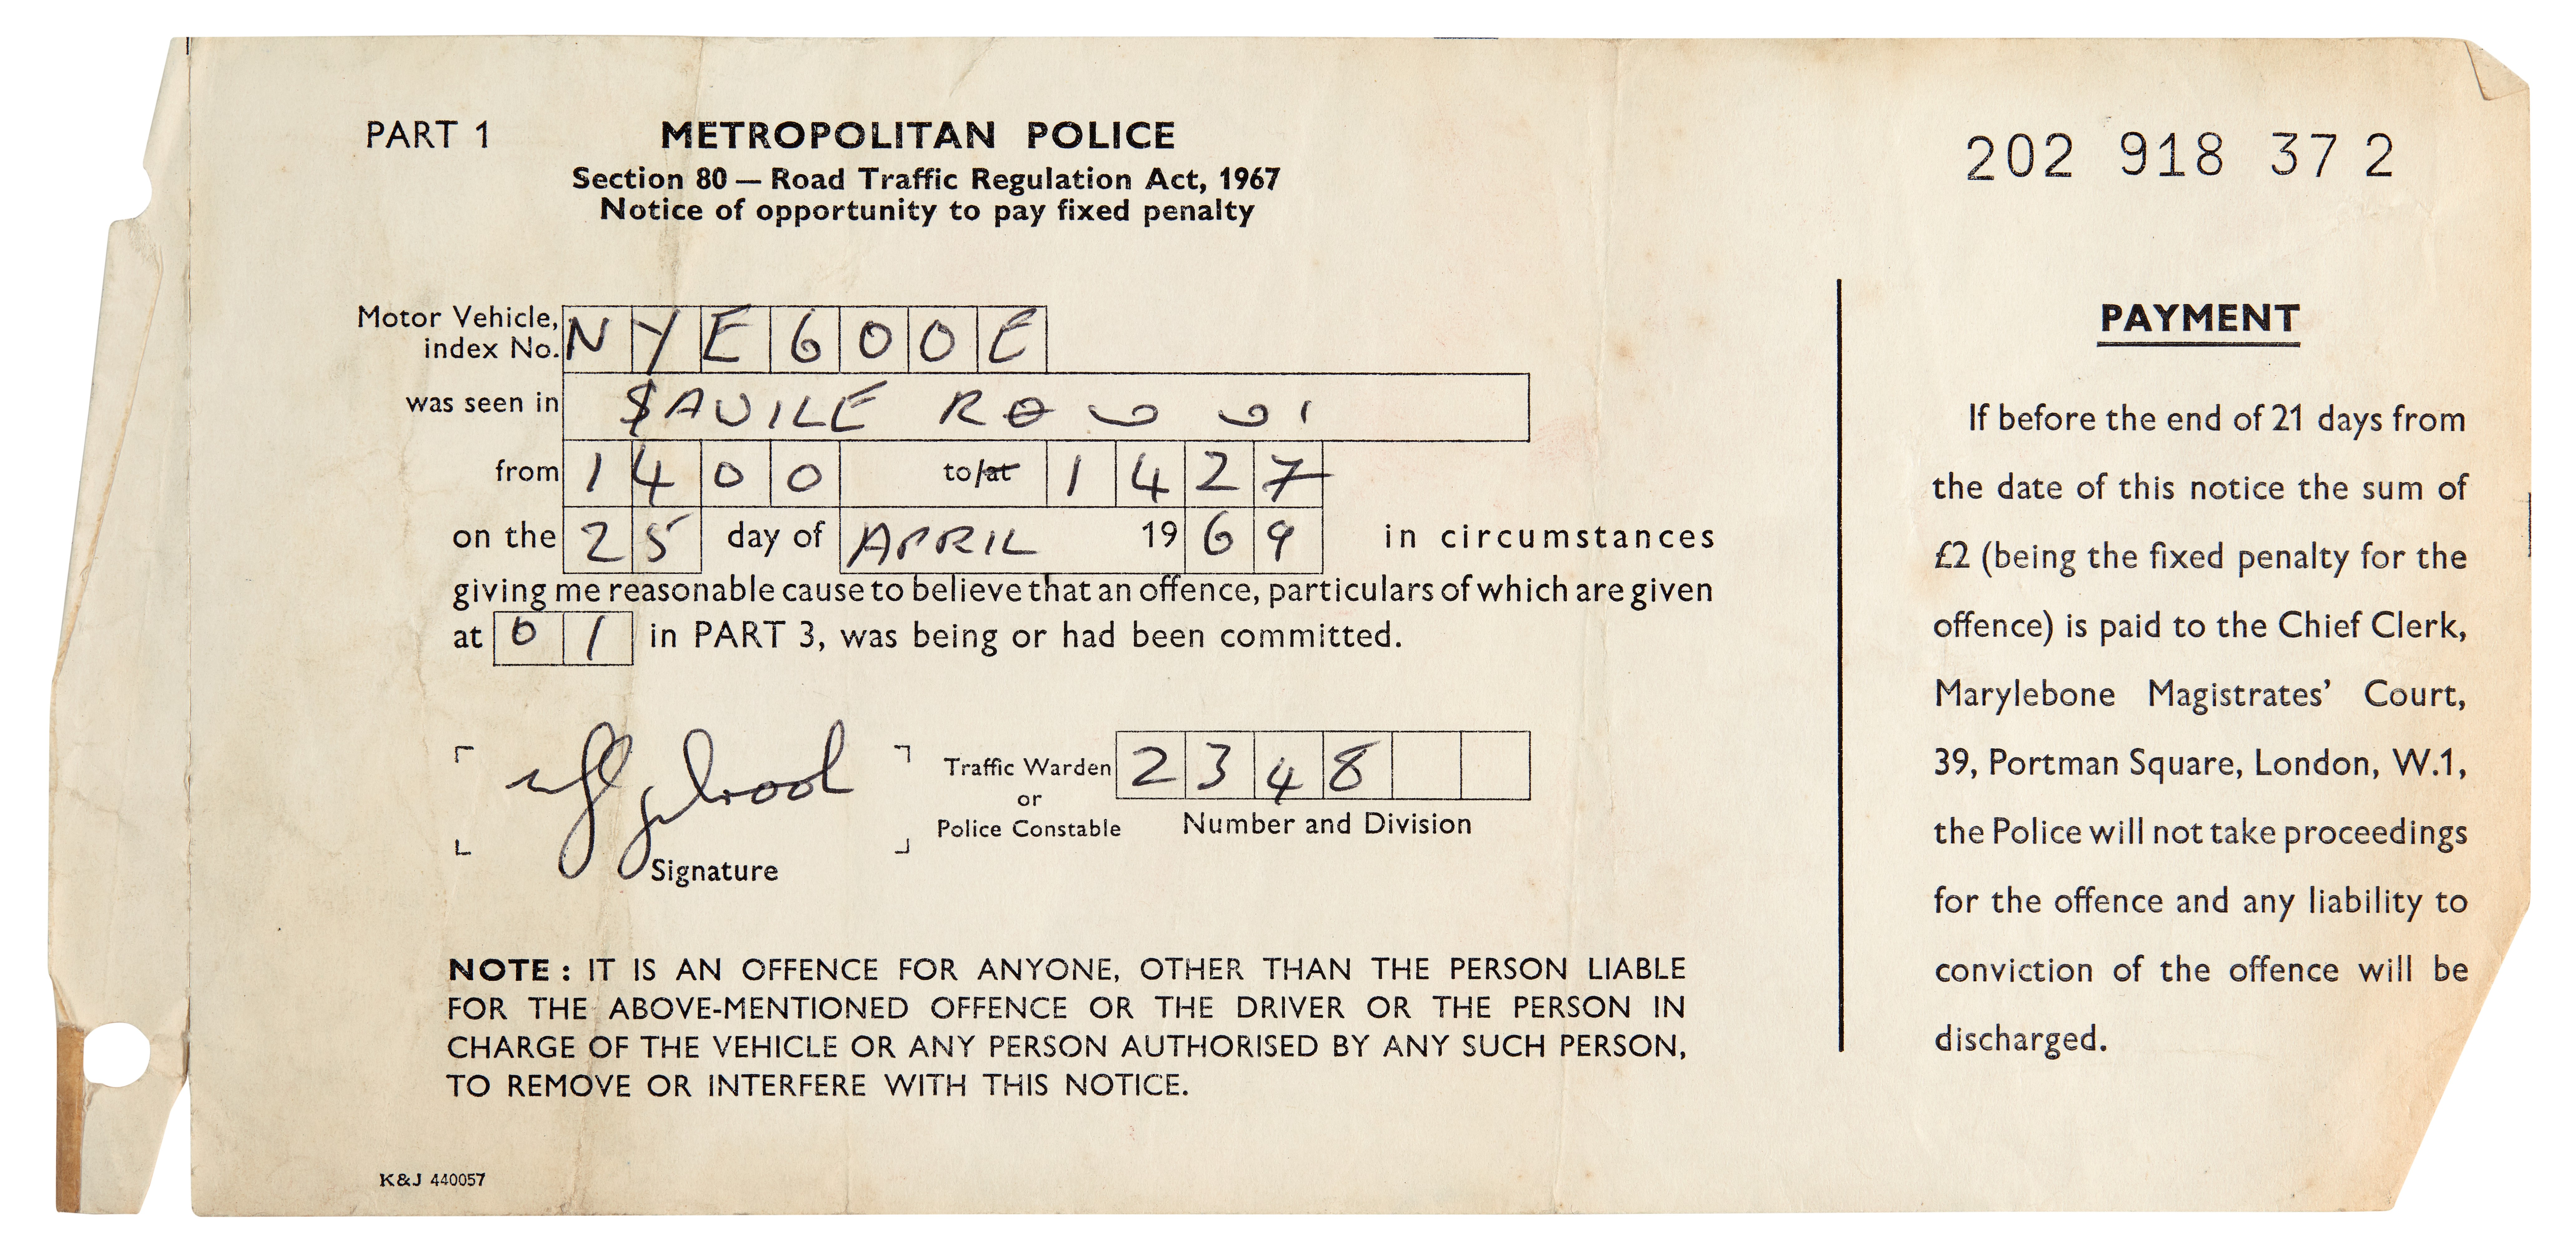 A parking ticket issued to Ringo Starr